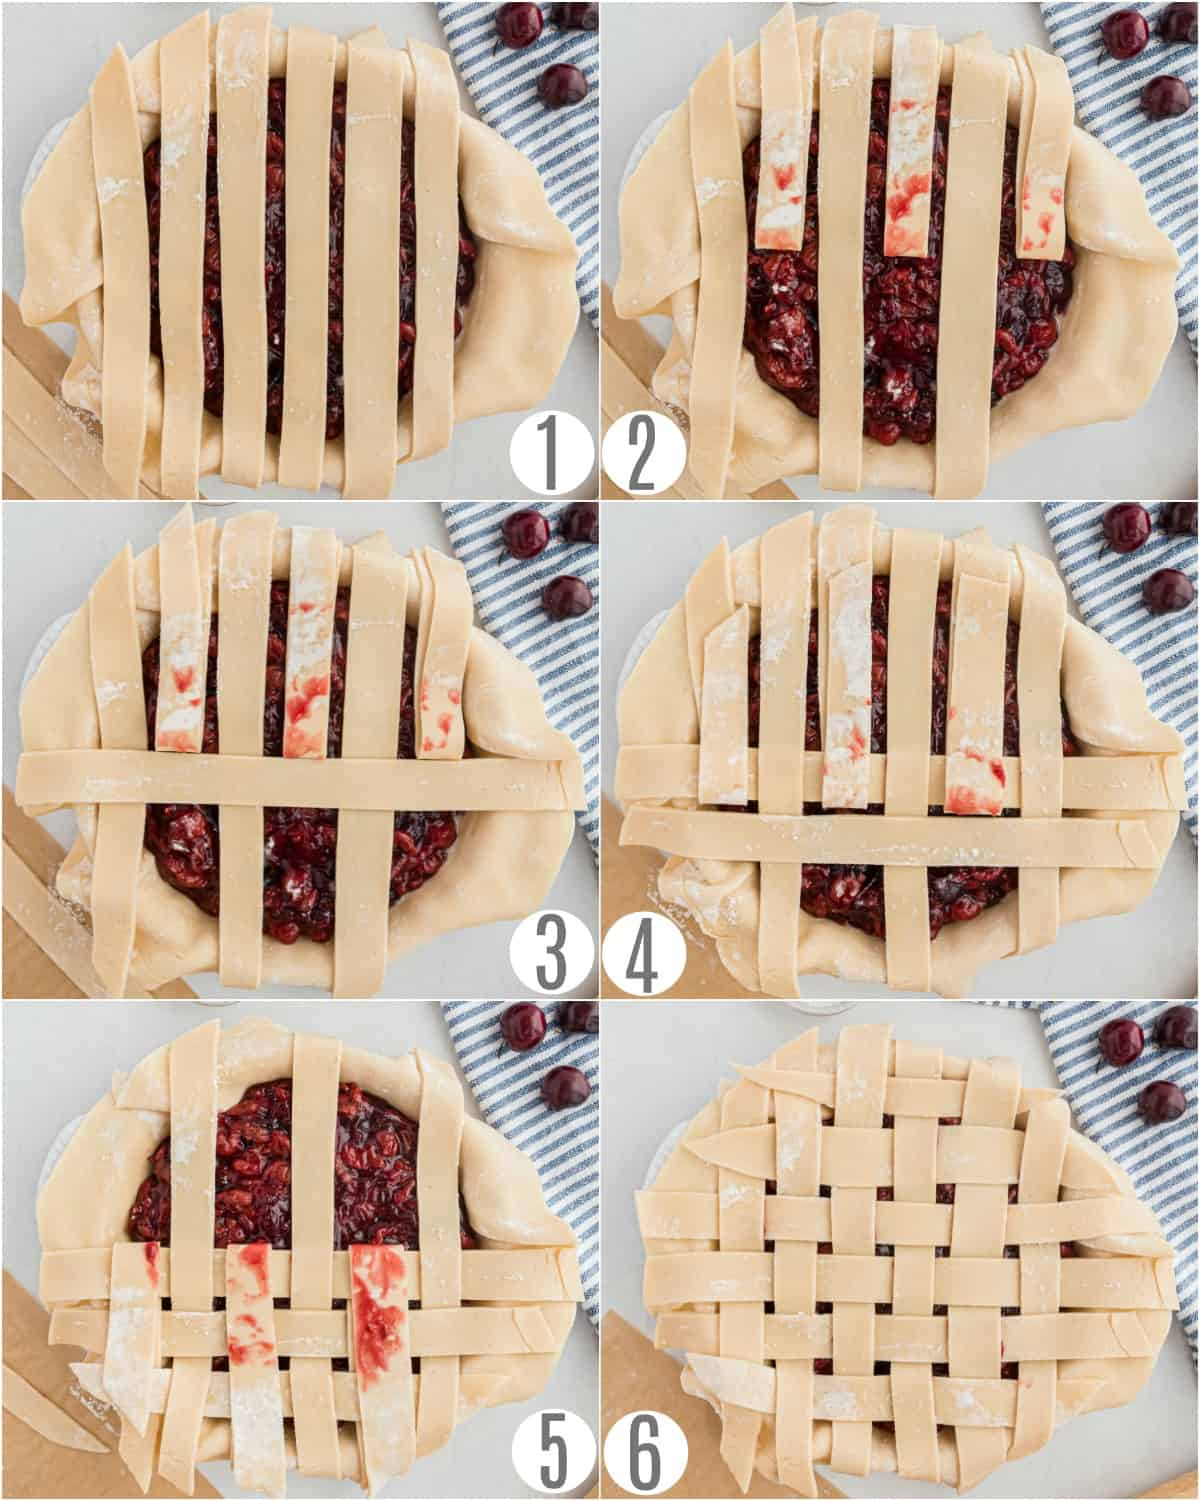 Step by step photos showing how to make a lattice pie crust.